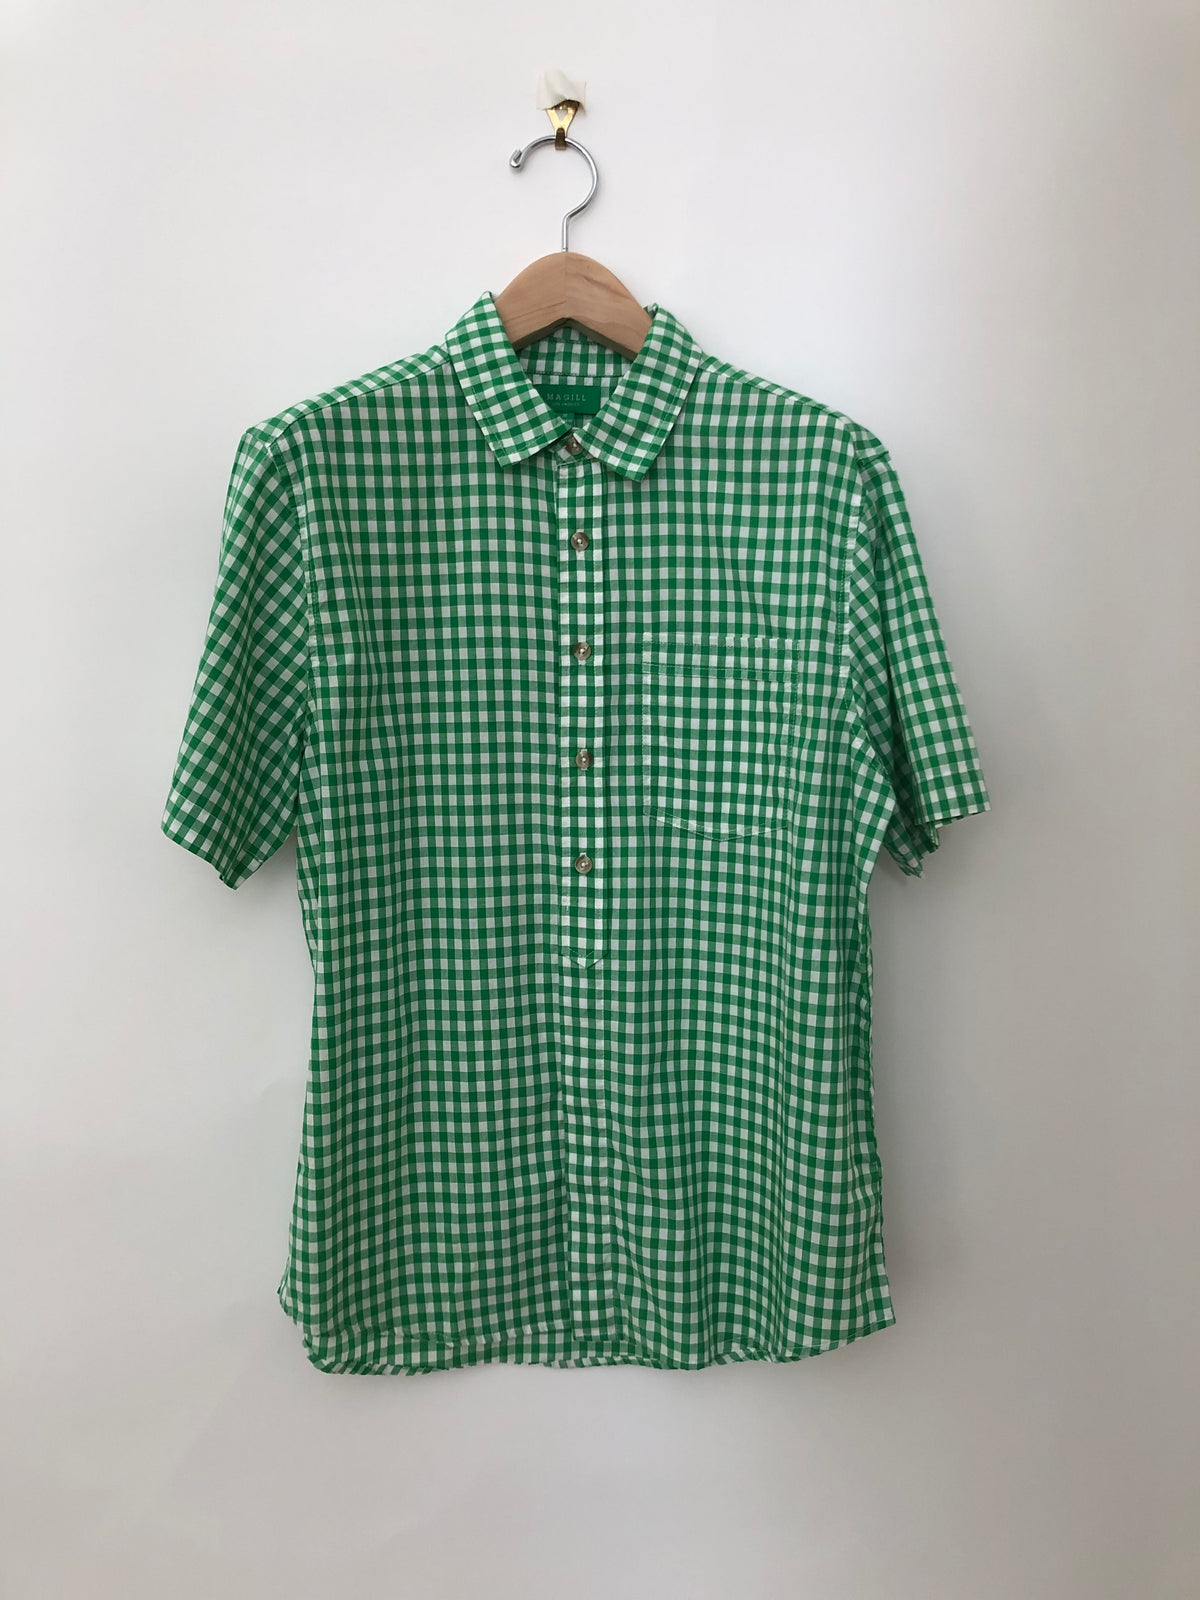 ELLIS - GINGHAM SHIRT - 4 COLORS